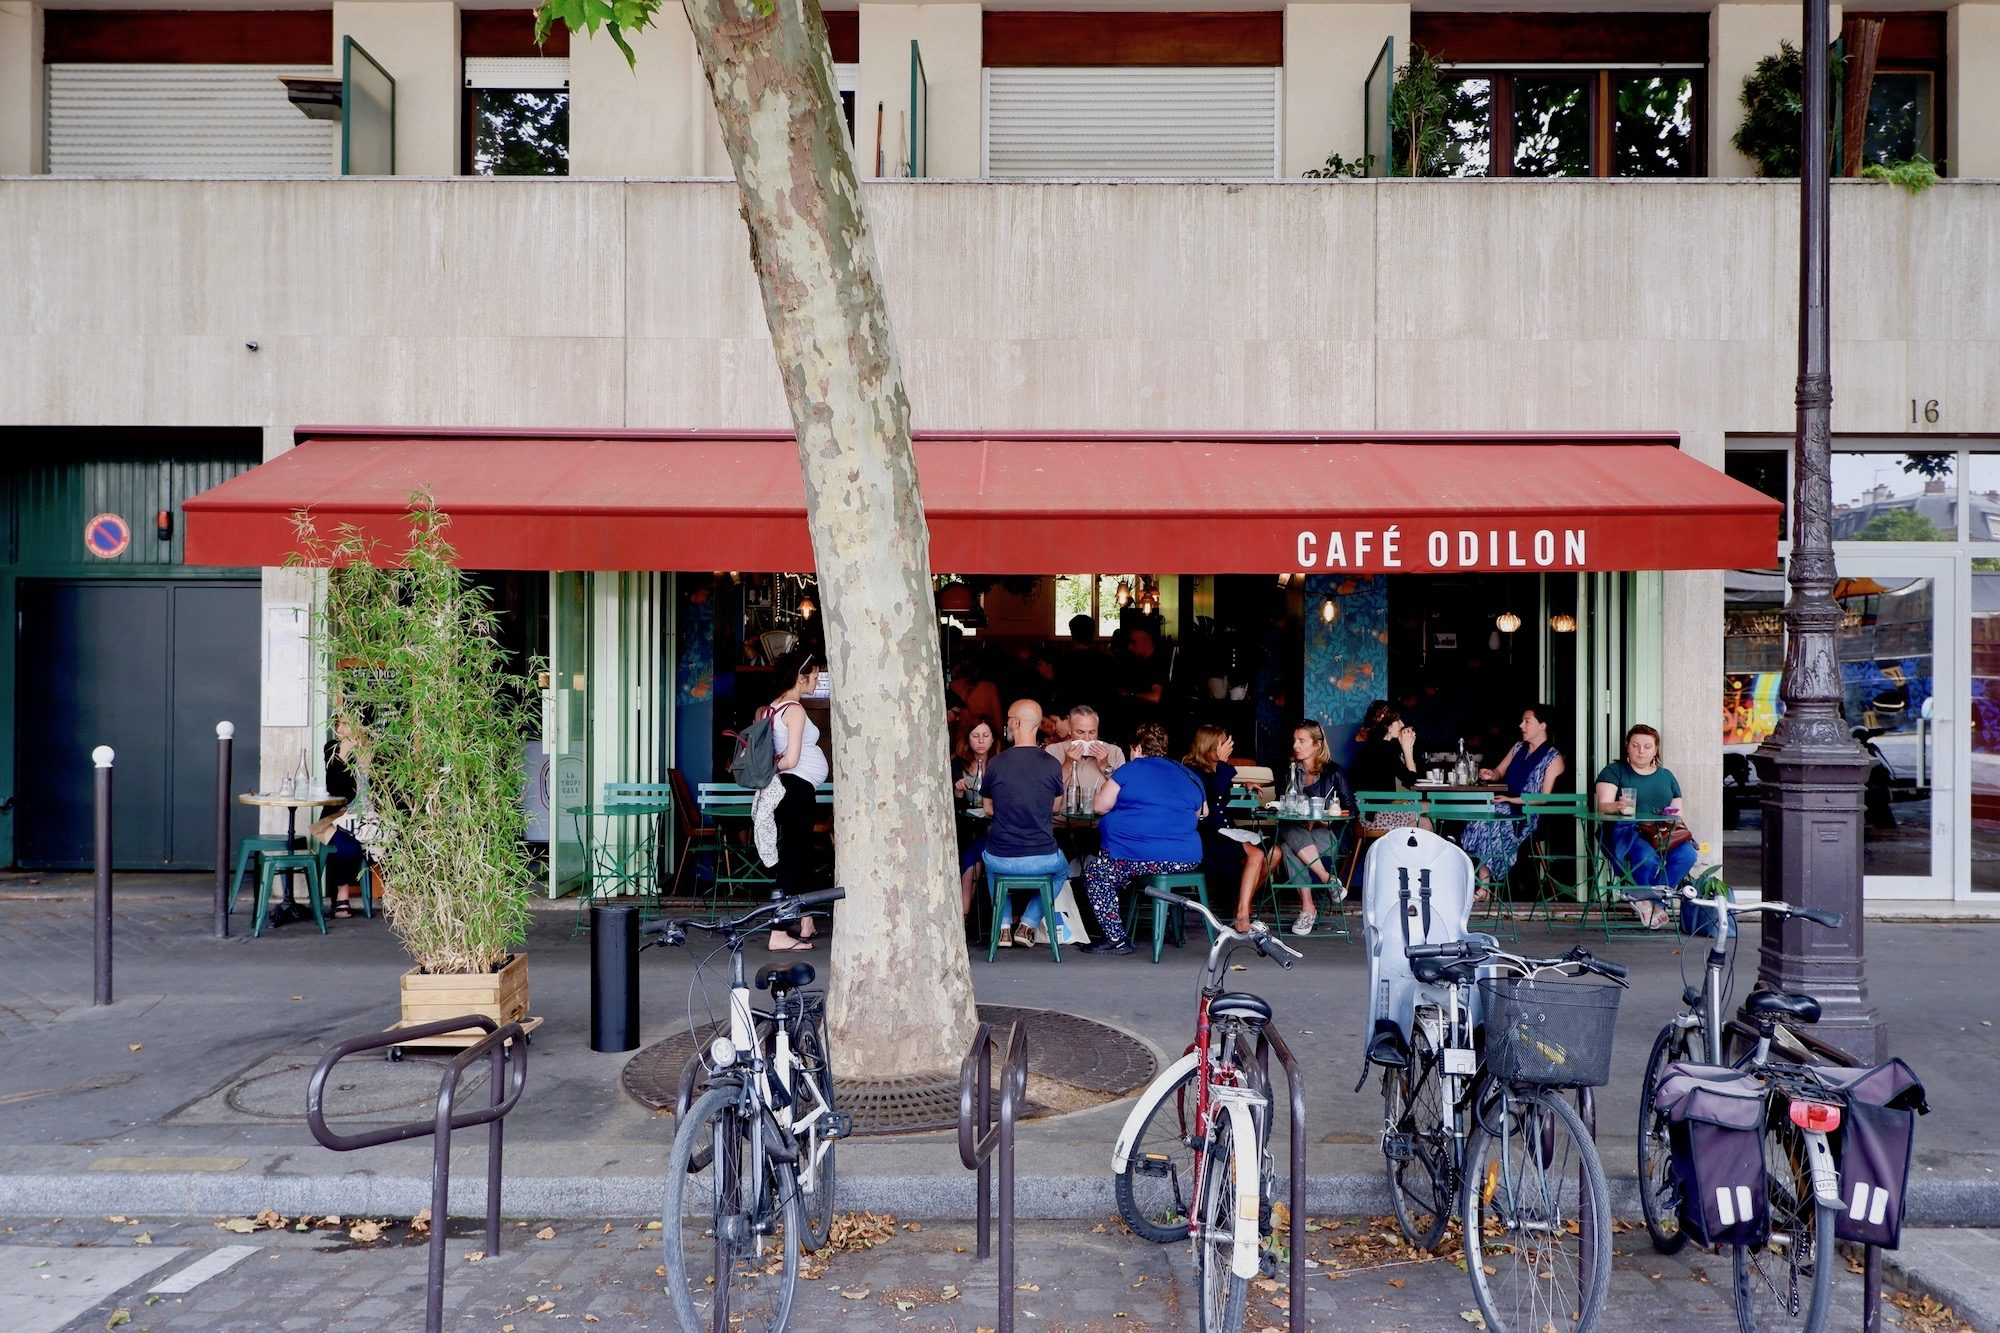 Café Odillon a favorite for pizza along the canal in north-eastern Paris.